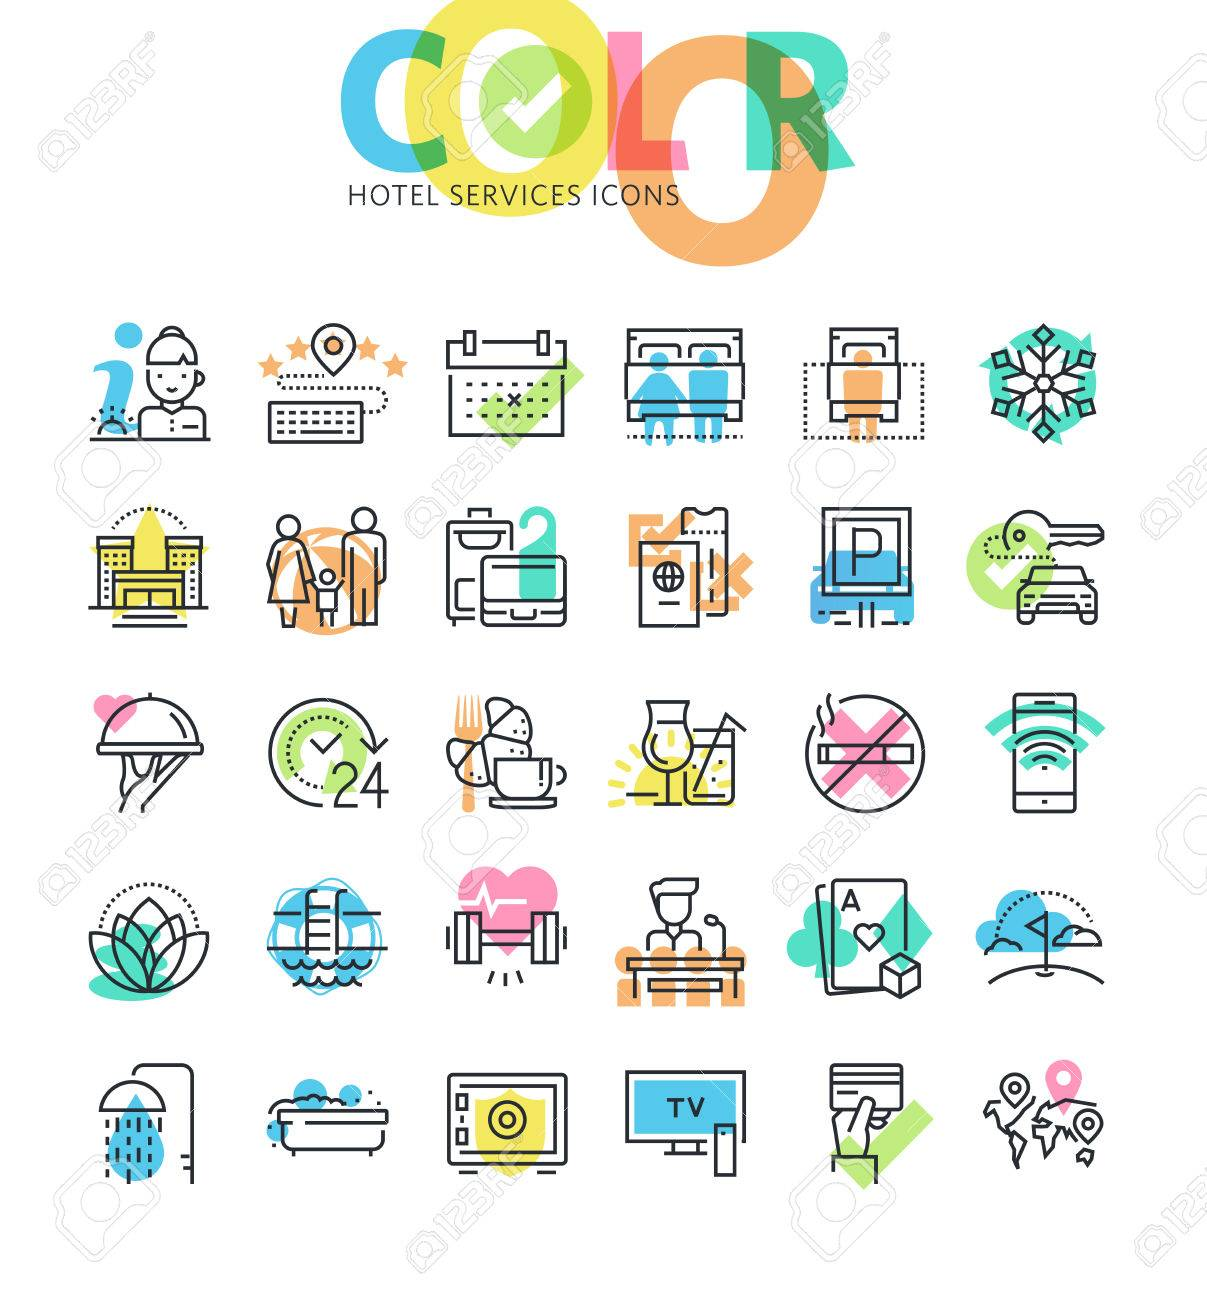 Flat line icons set of hotel booking, accommodation, hotel services and facilities. Modern design icons for web and app design and development. - 61527861